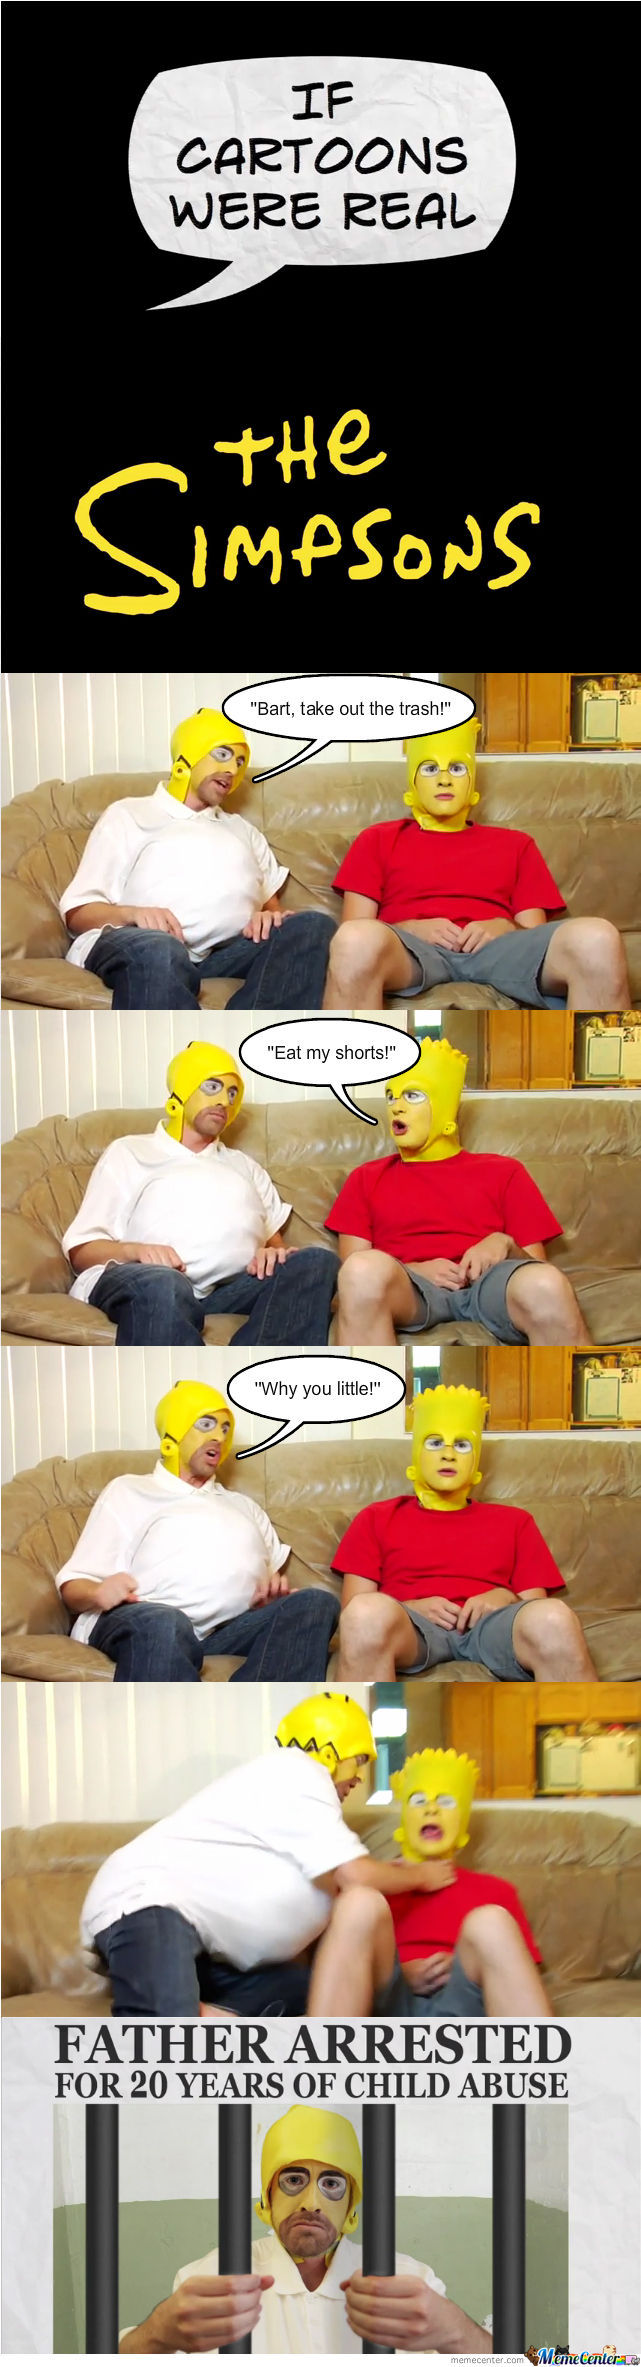 If Cartoons Were Real: The Simpsons.